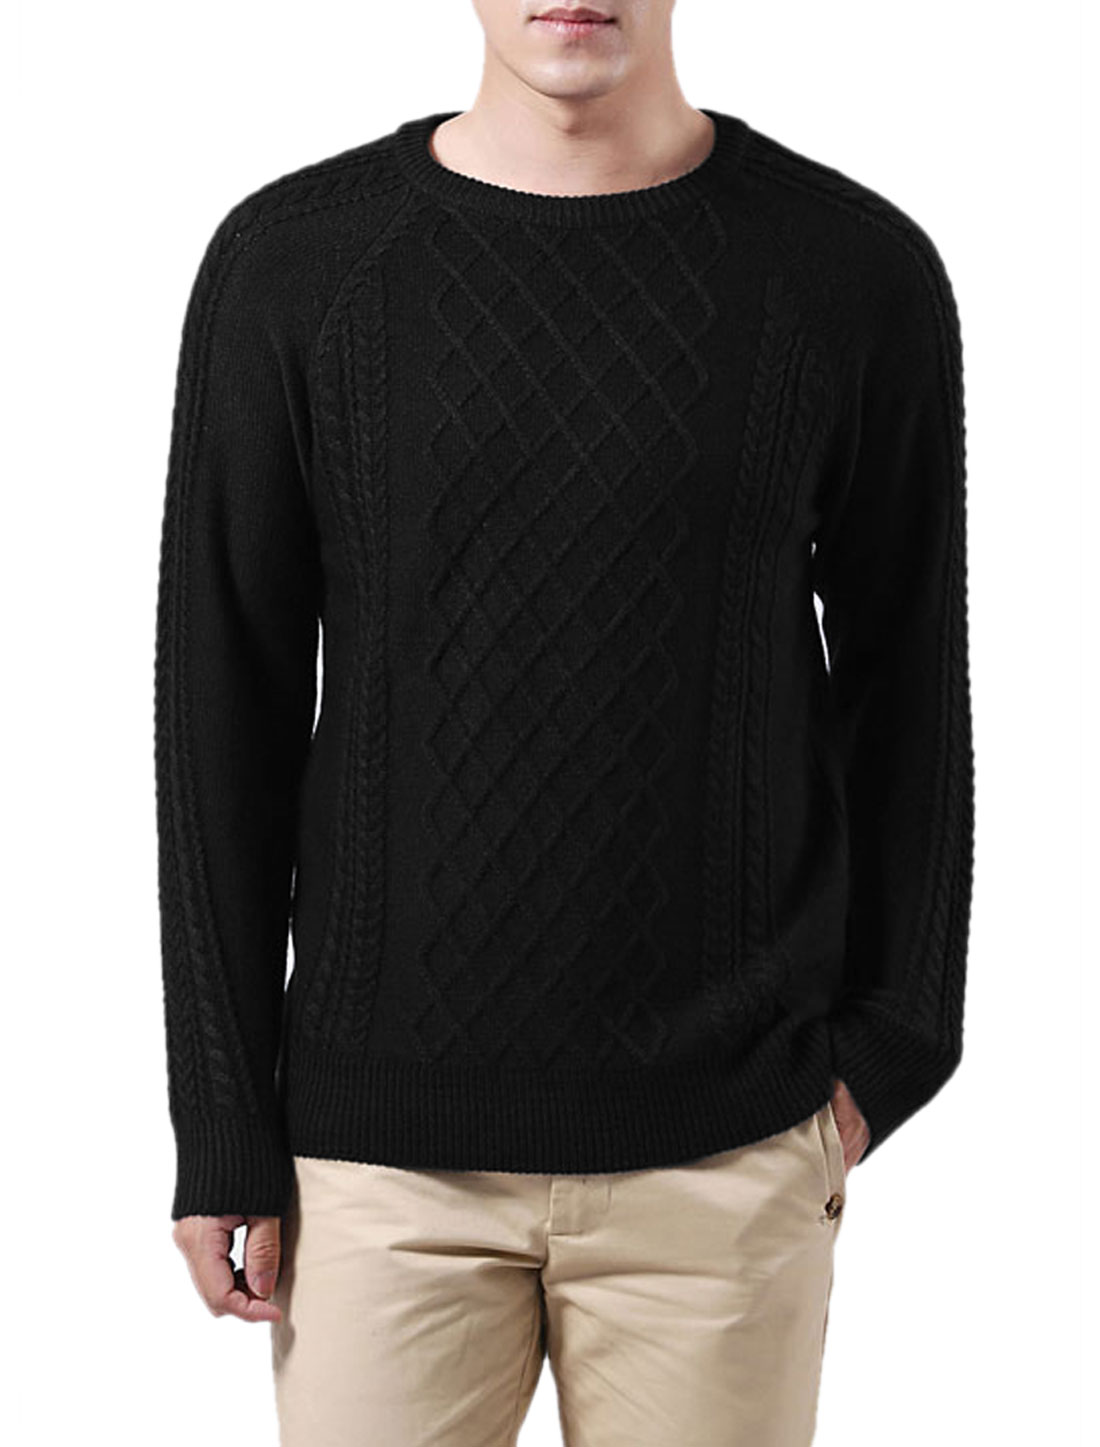 Stylish Pure Black Textured Design Fall Winter Sweater for Man M